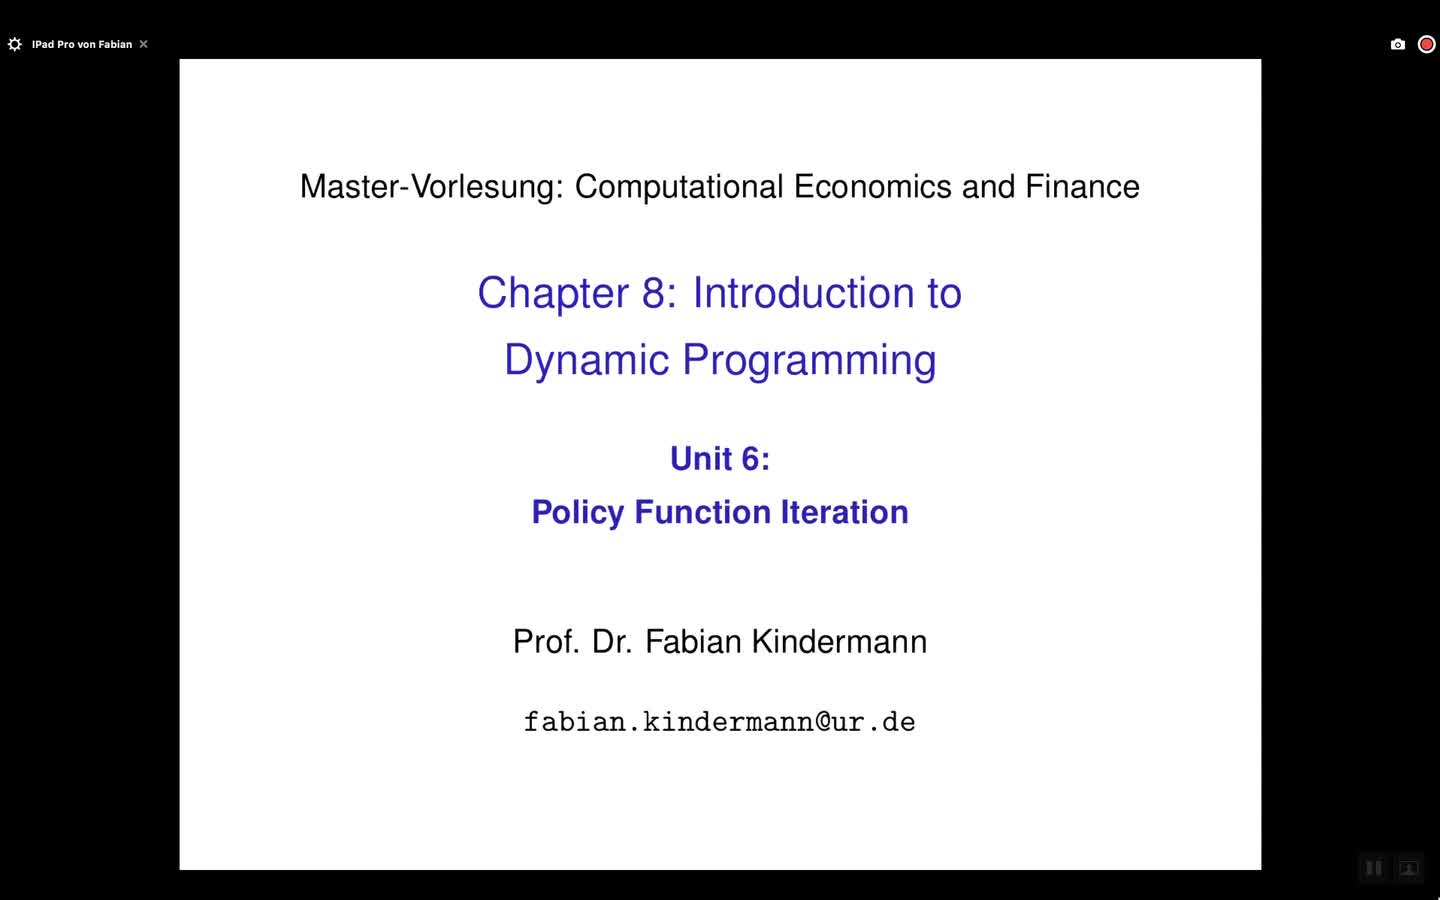 Chapter 8 - Unit 6 - Policy Function Iteration